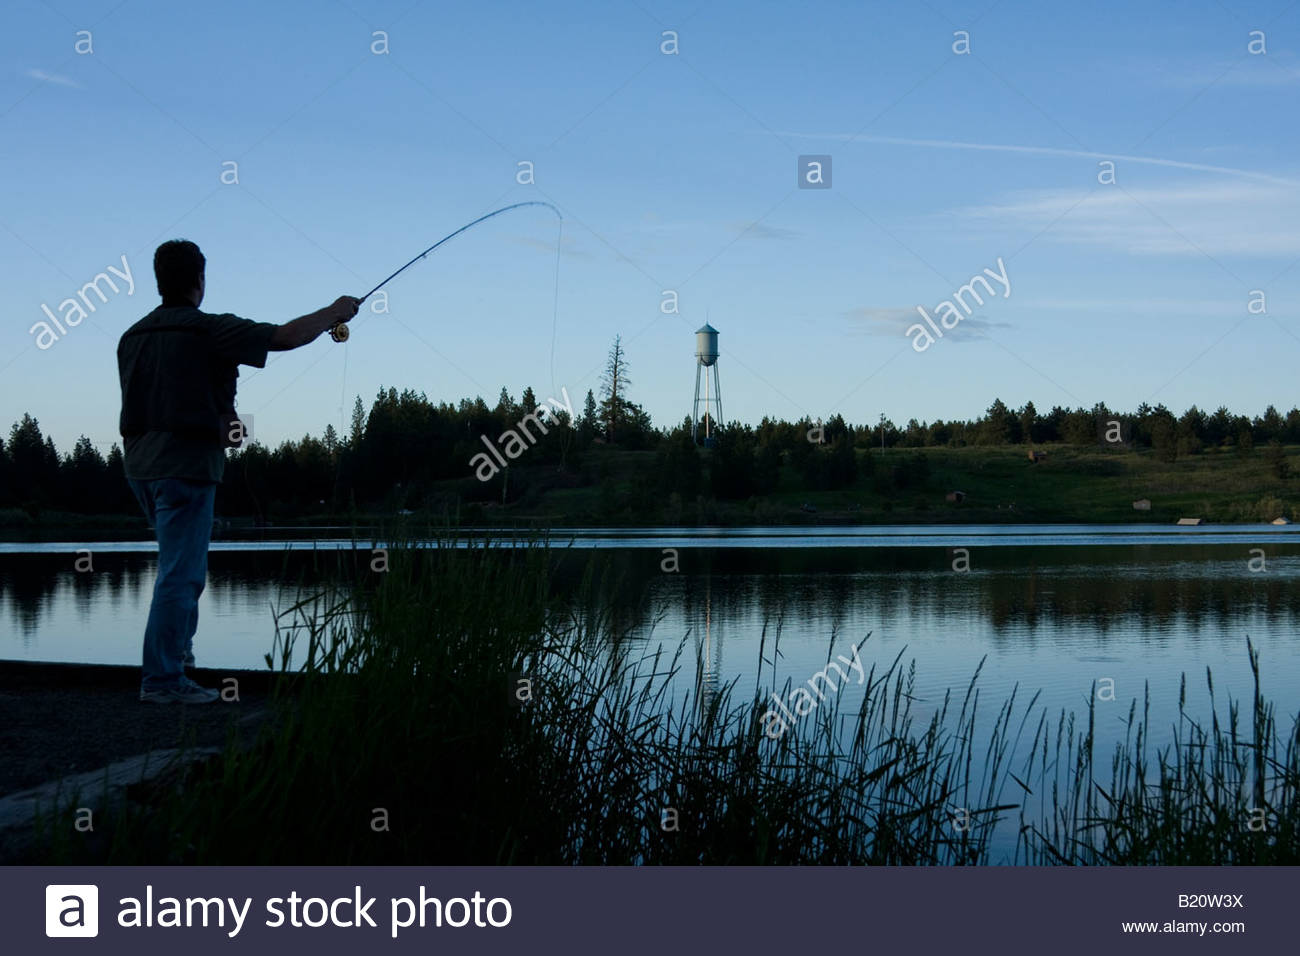 Silhouette of a man casting a fly rod from the shore at ...